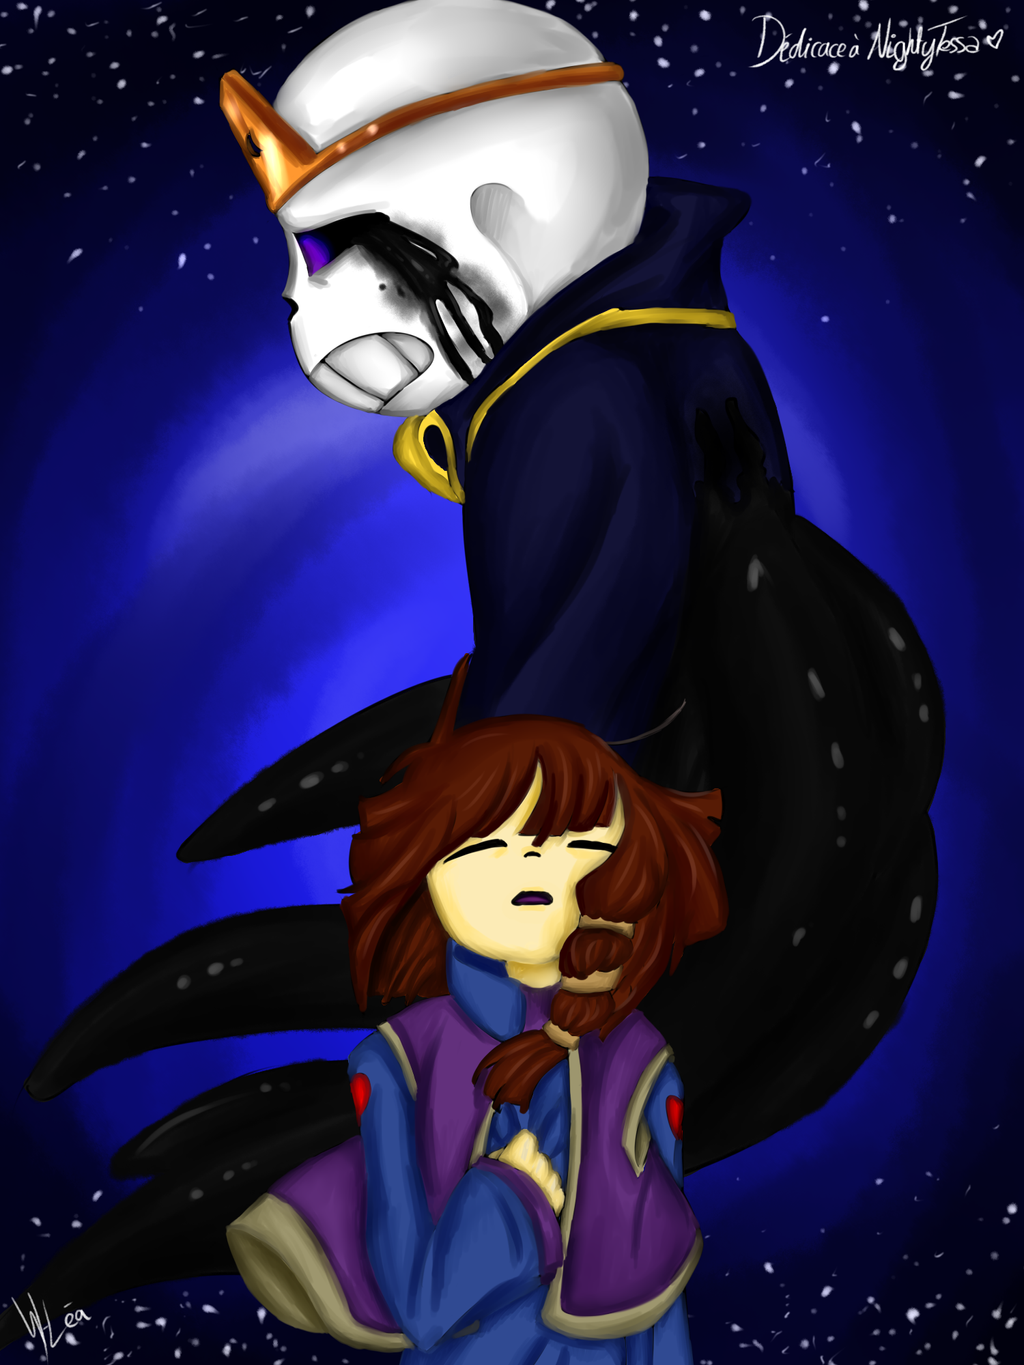 Frisk Nightmare Images - Reverse Search